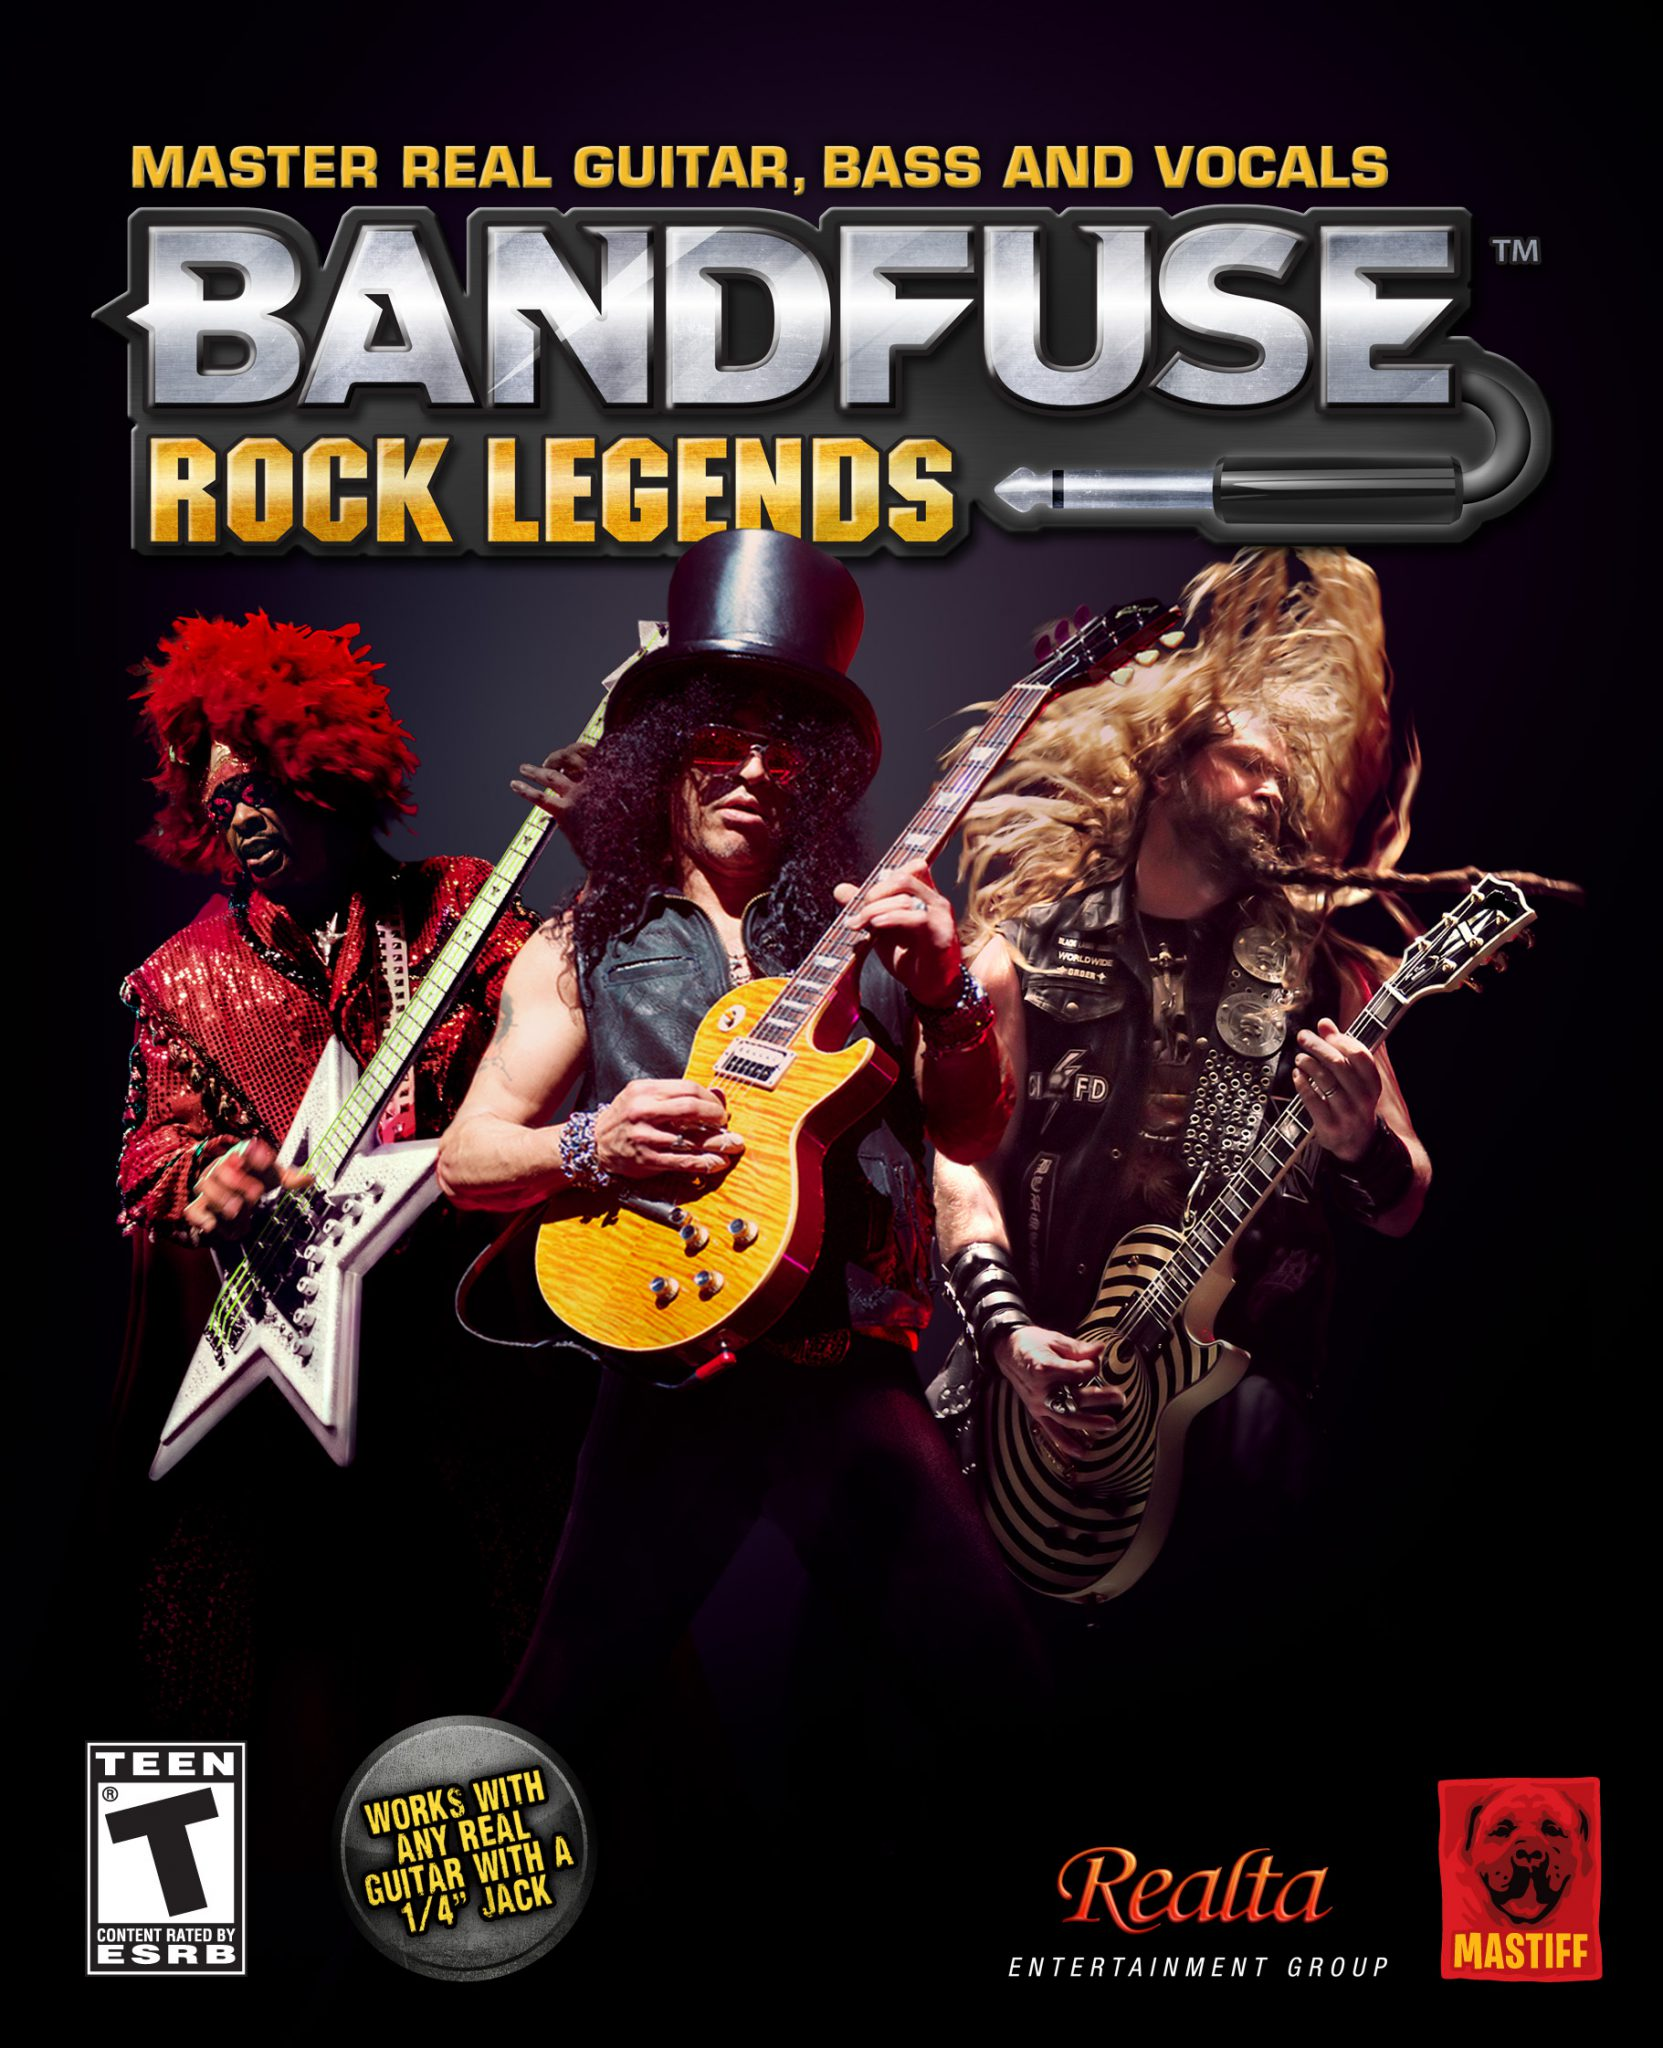 BandFuse: Rock Legends Box Art Unveiled | GamingShogun on